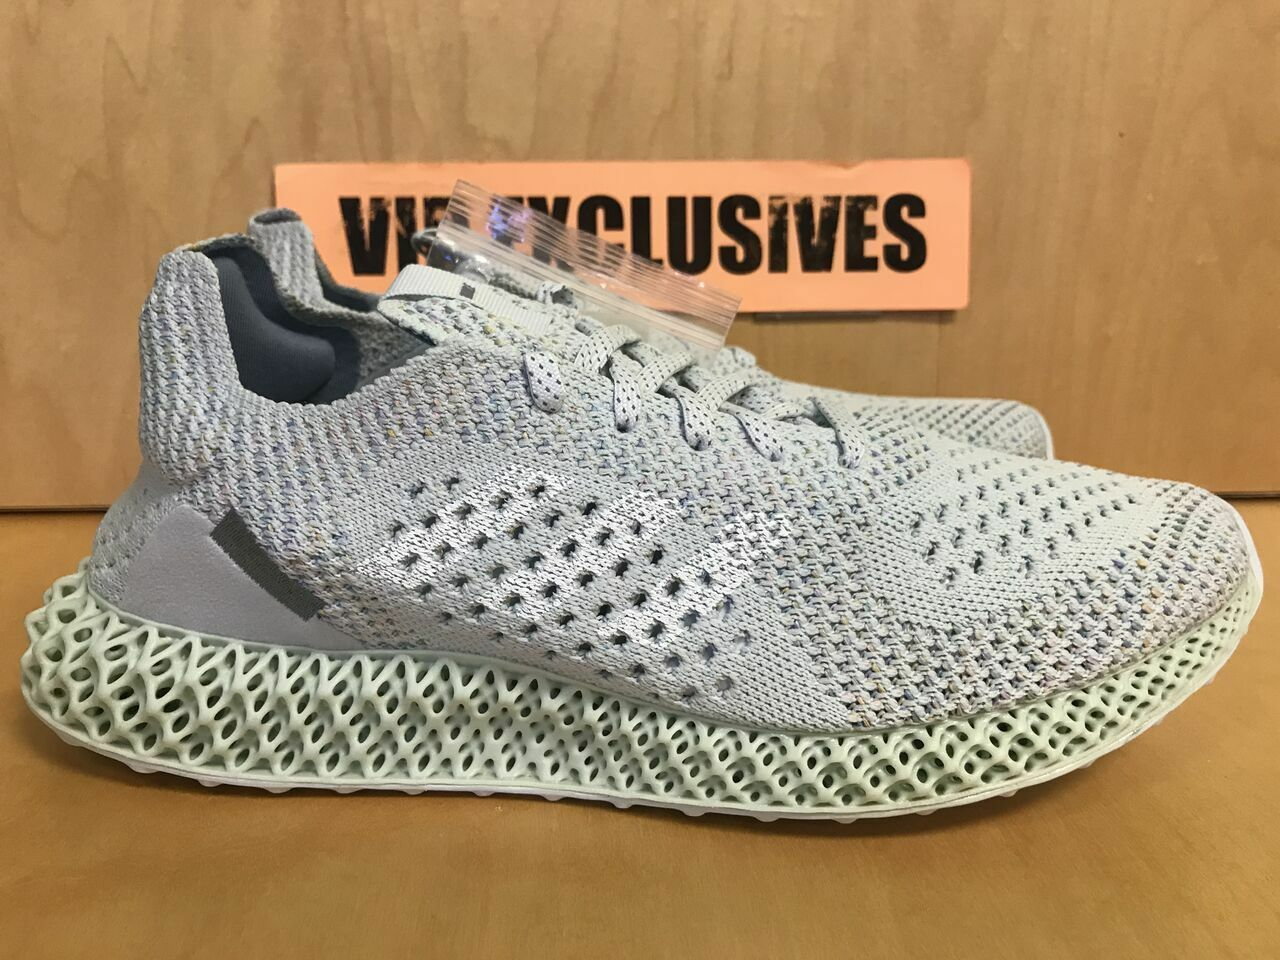 Adidas FutureCraft 4D Invincible Prism B96613 LIMITED ONLY 80 PAIRS RELEASED!